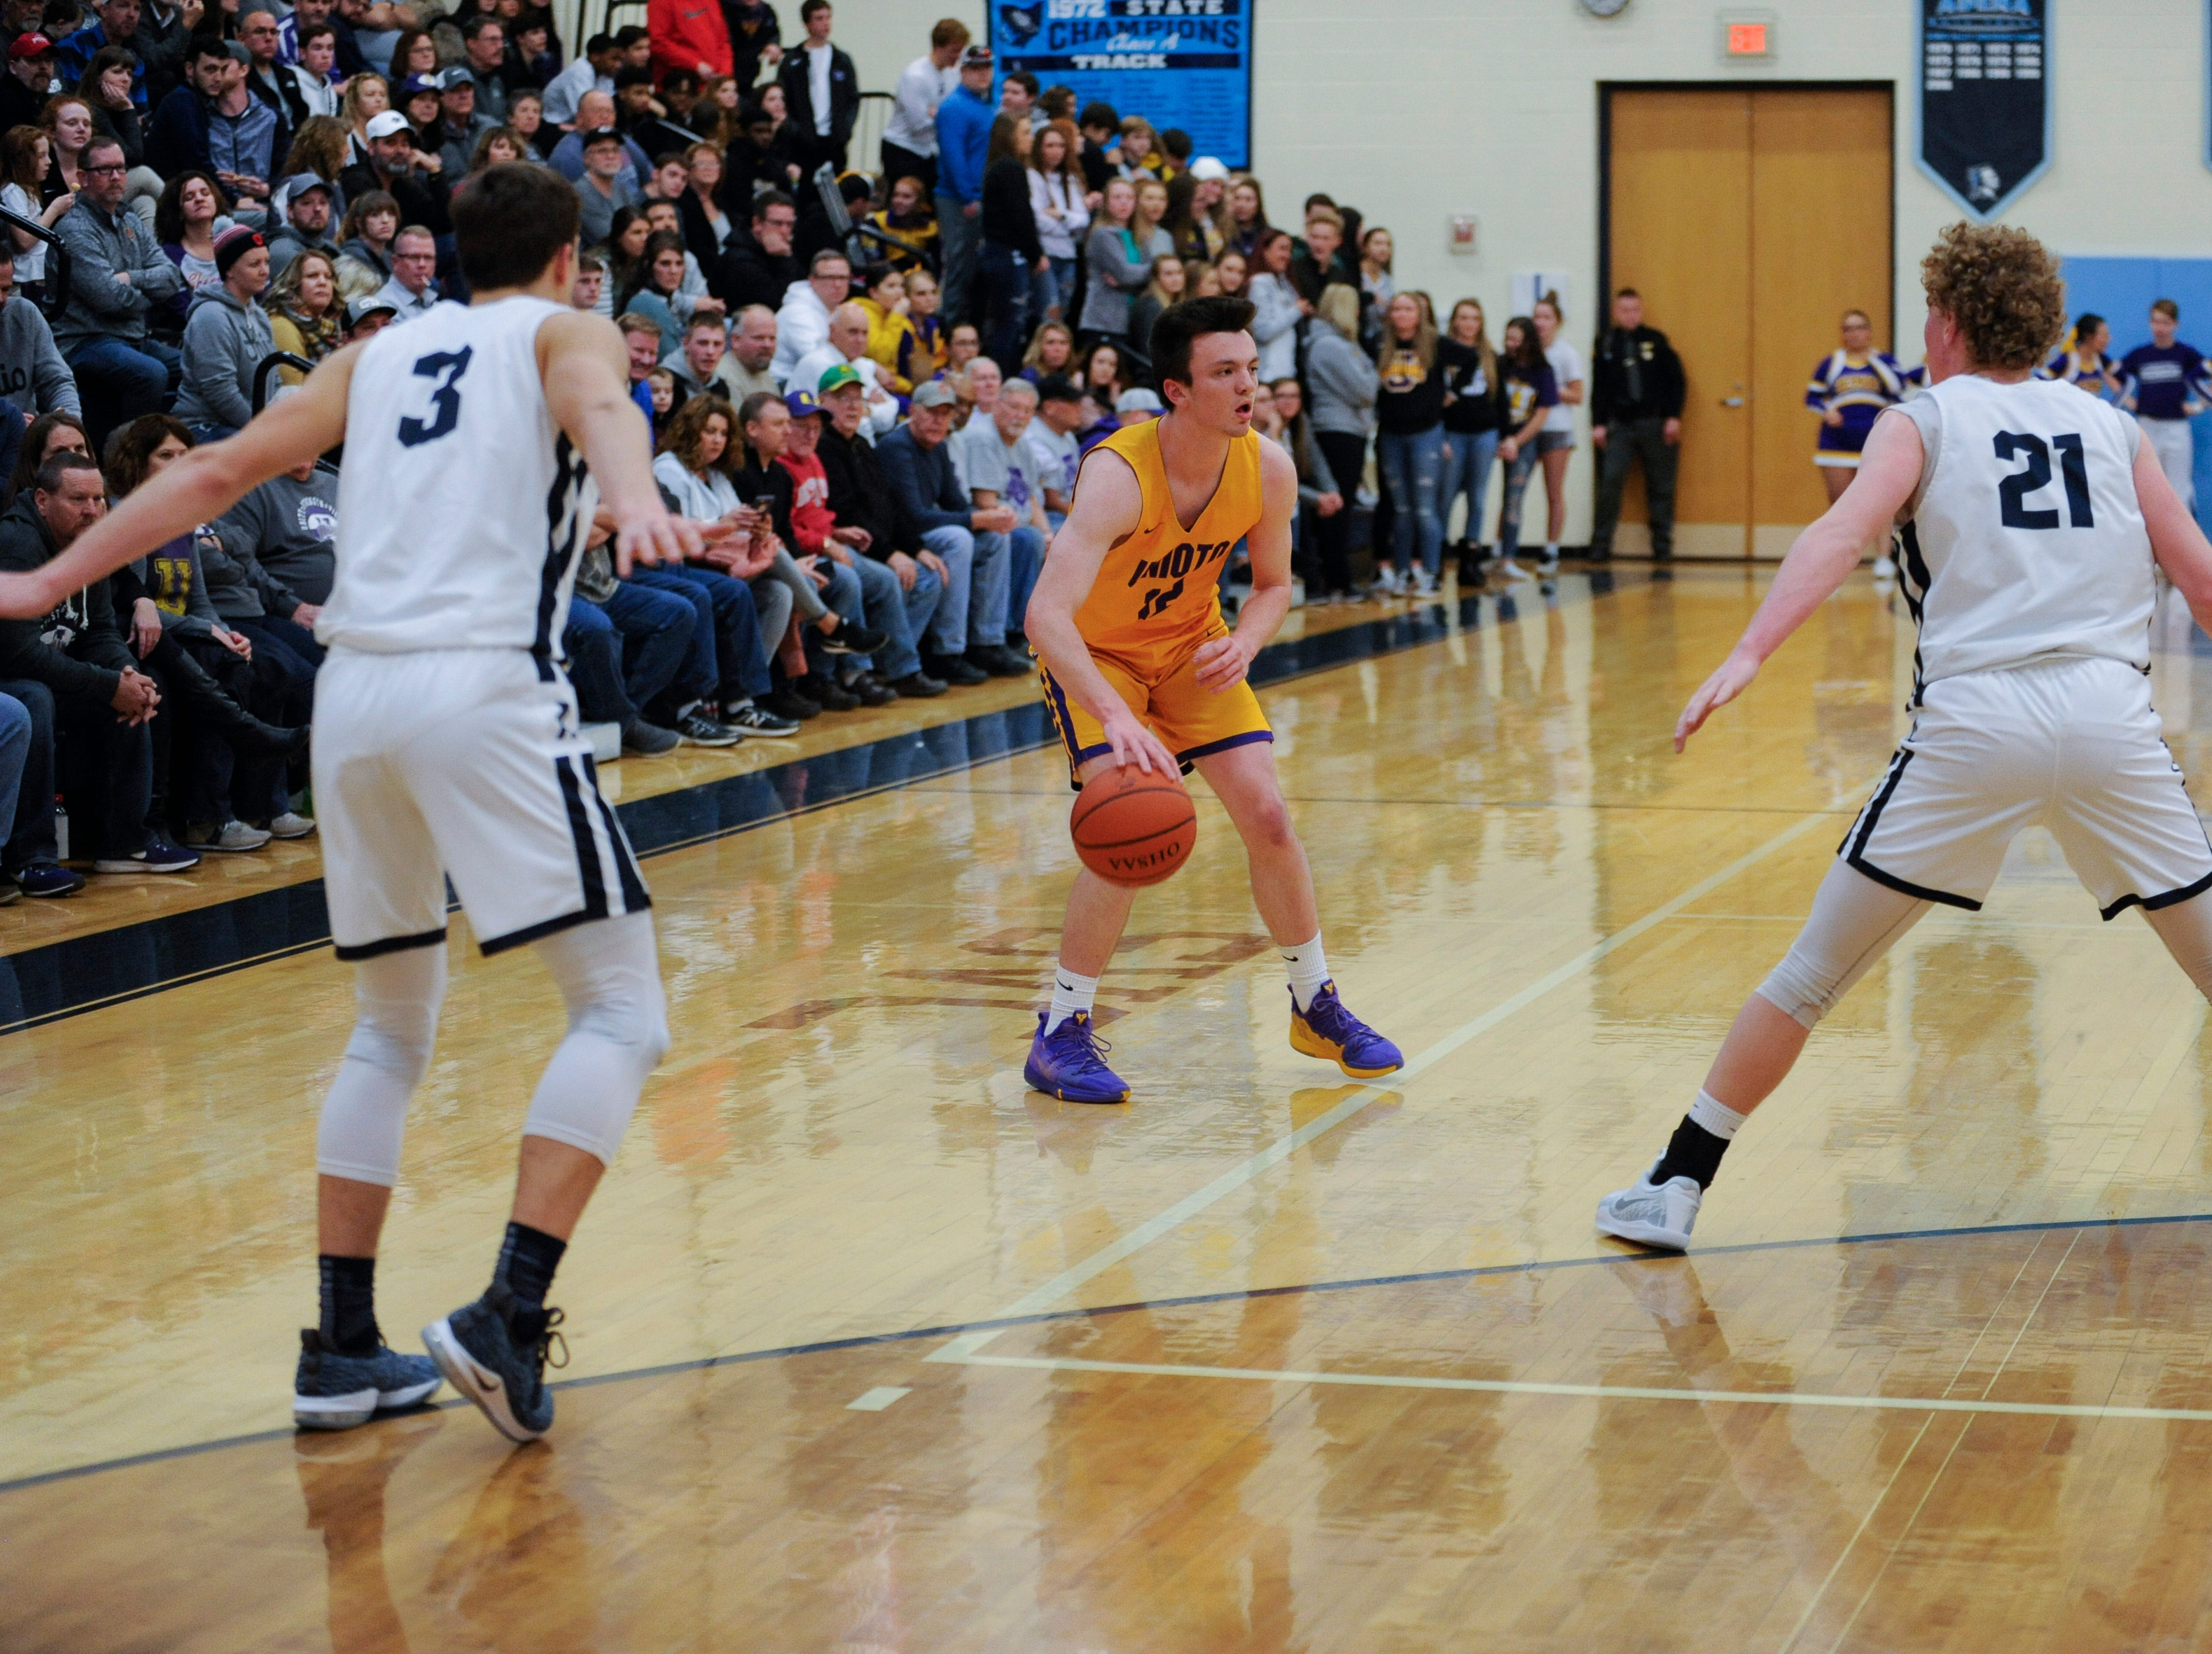 Adena defeated Unioto Friday night 50-38 in Frankfort, Ohio, to elevate Adena 16-4 for the season with only two svc games left for the season.